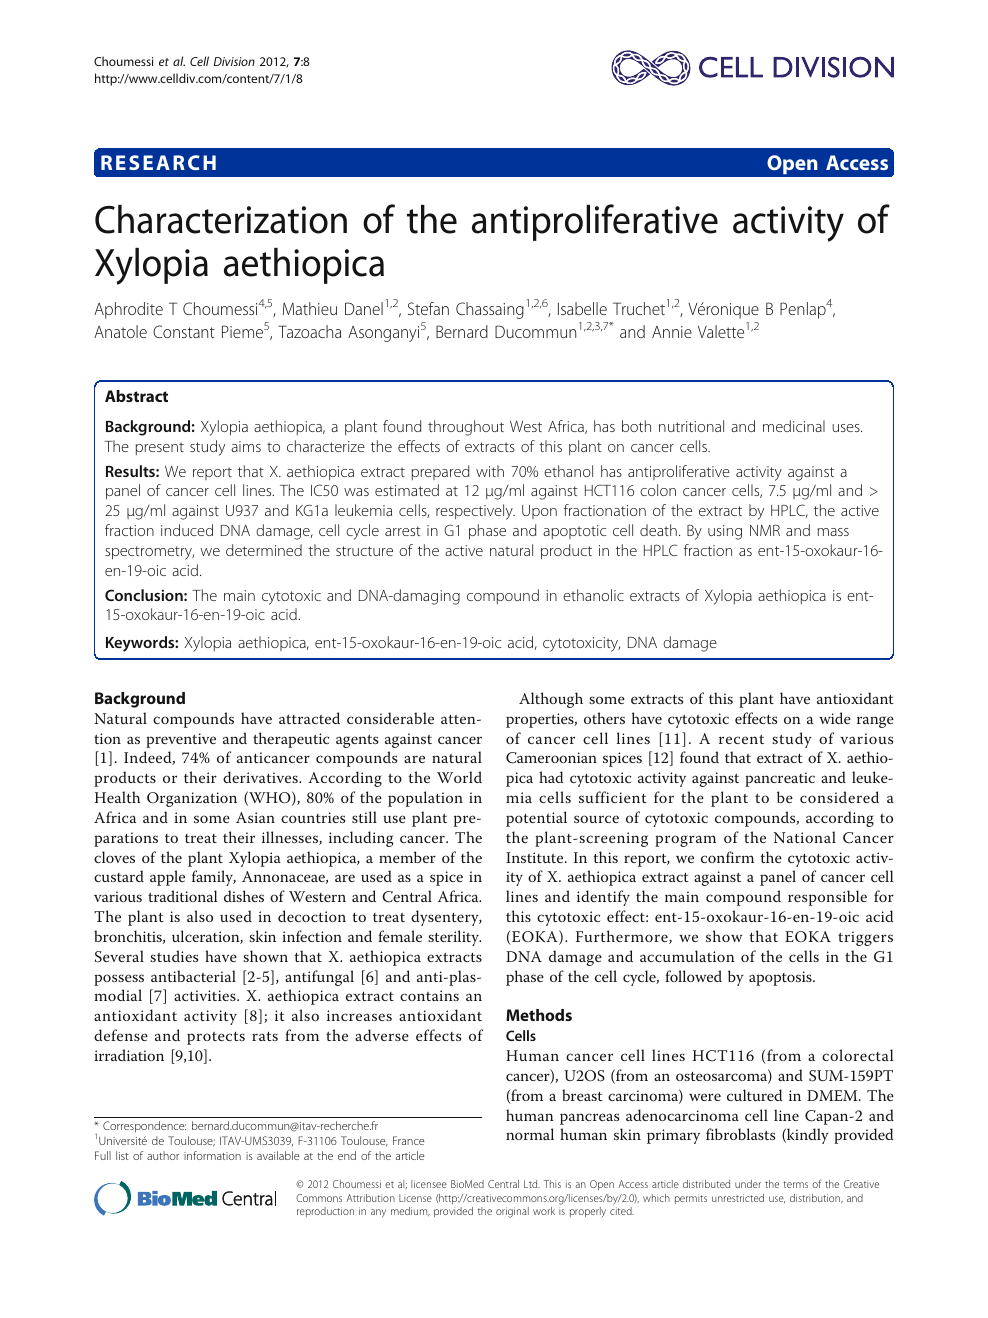 Characterization Of The Antiproliferative Activity Of Xylopia Aethiopica Topic Of Research Paper In Biological Sciences Download Scholarly Article Pdf And Read For Free On Cyberleninka Open Science Hub